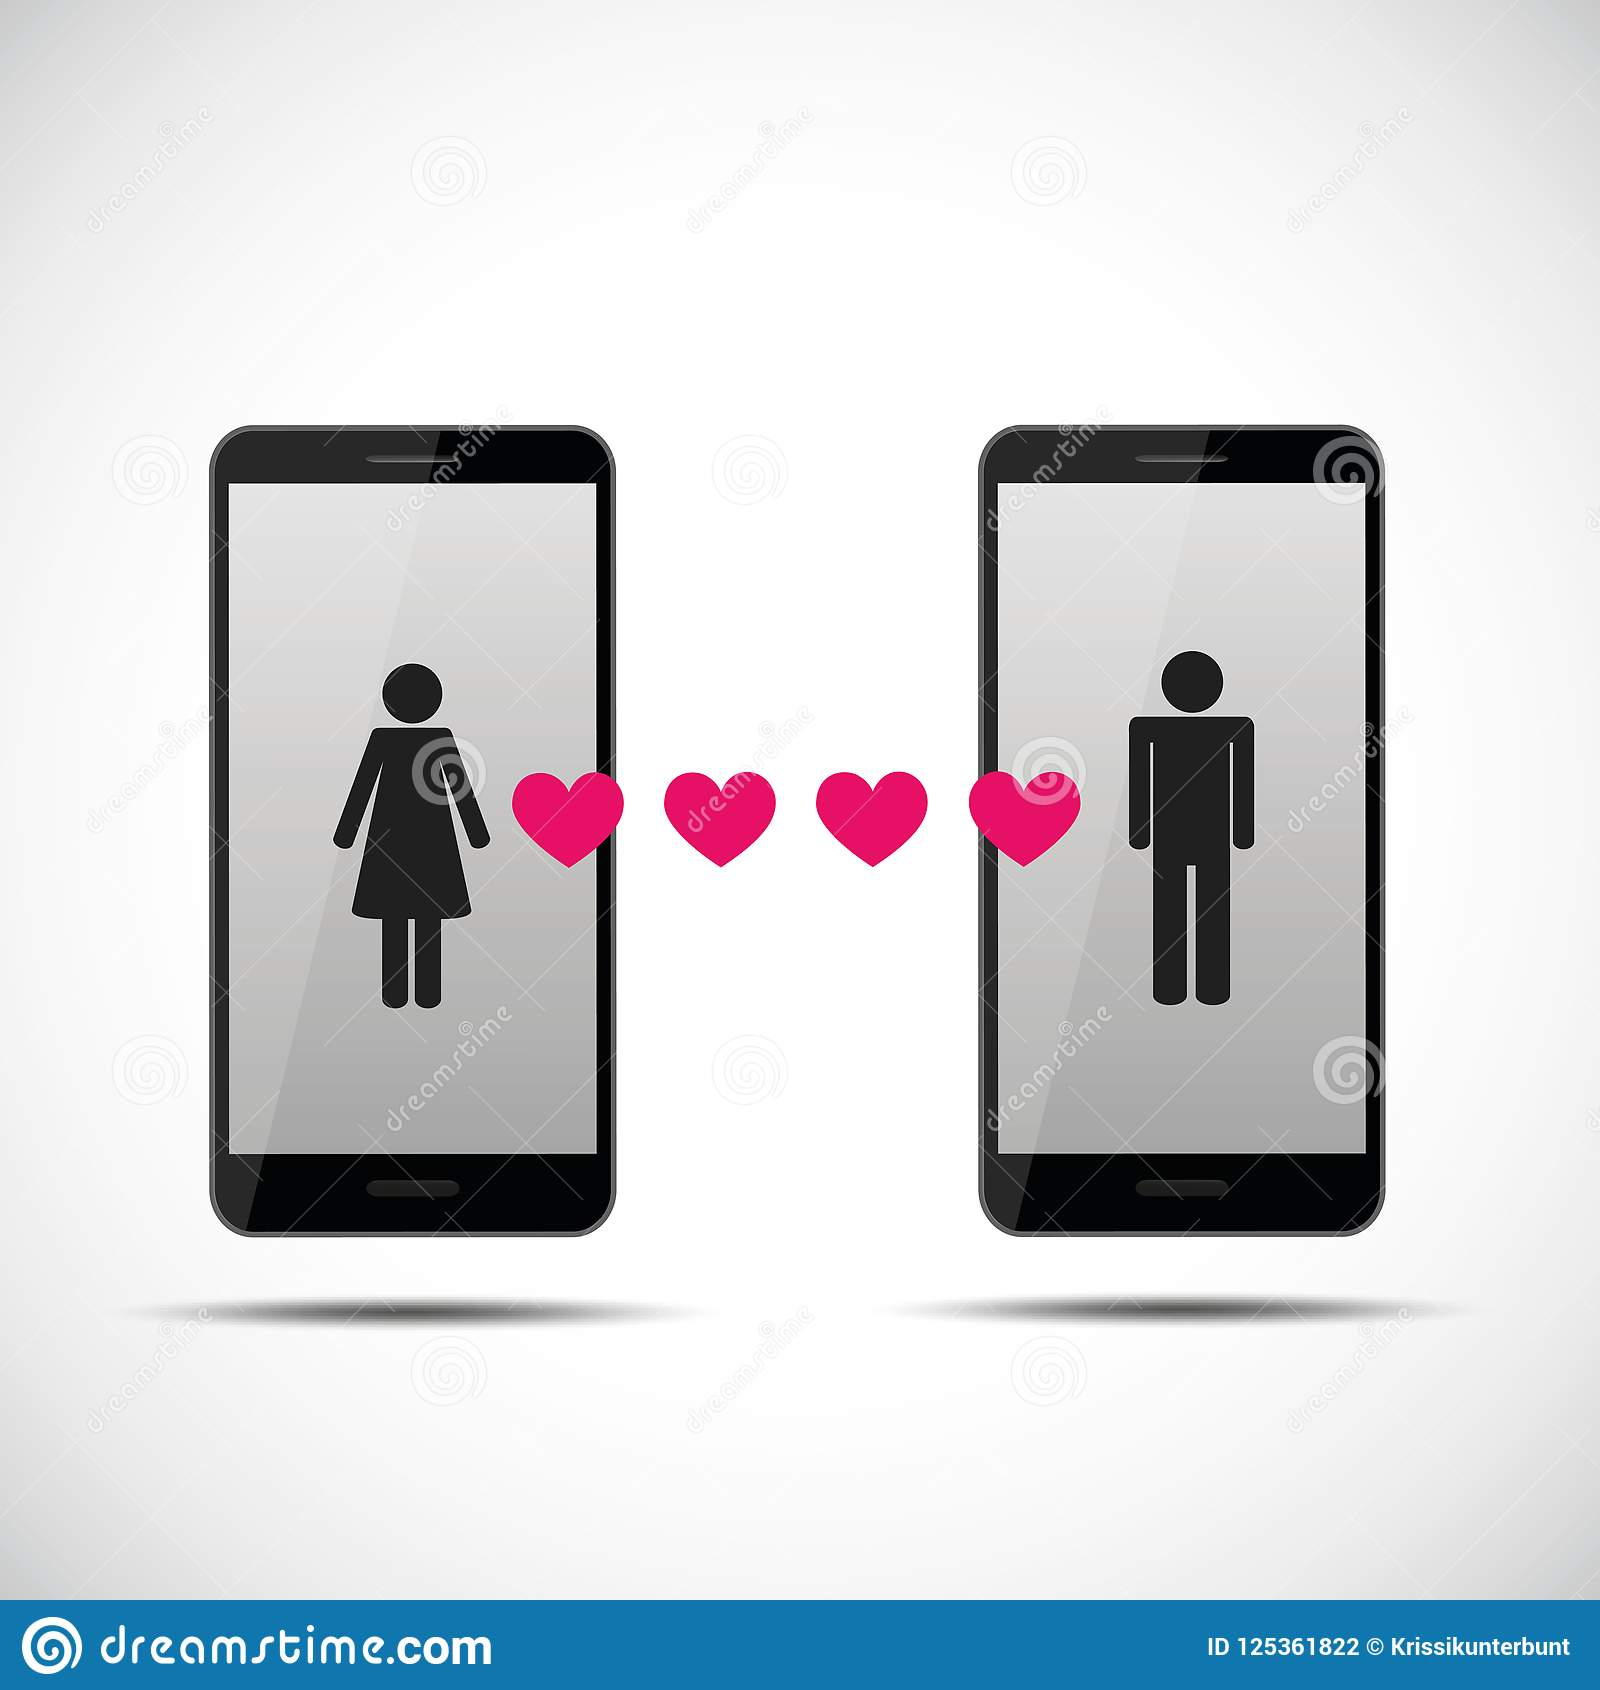 Man to woman app